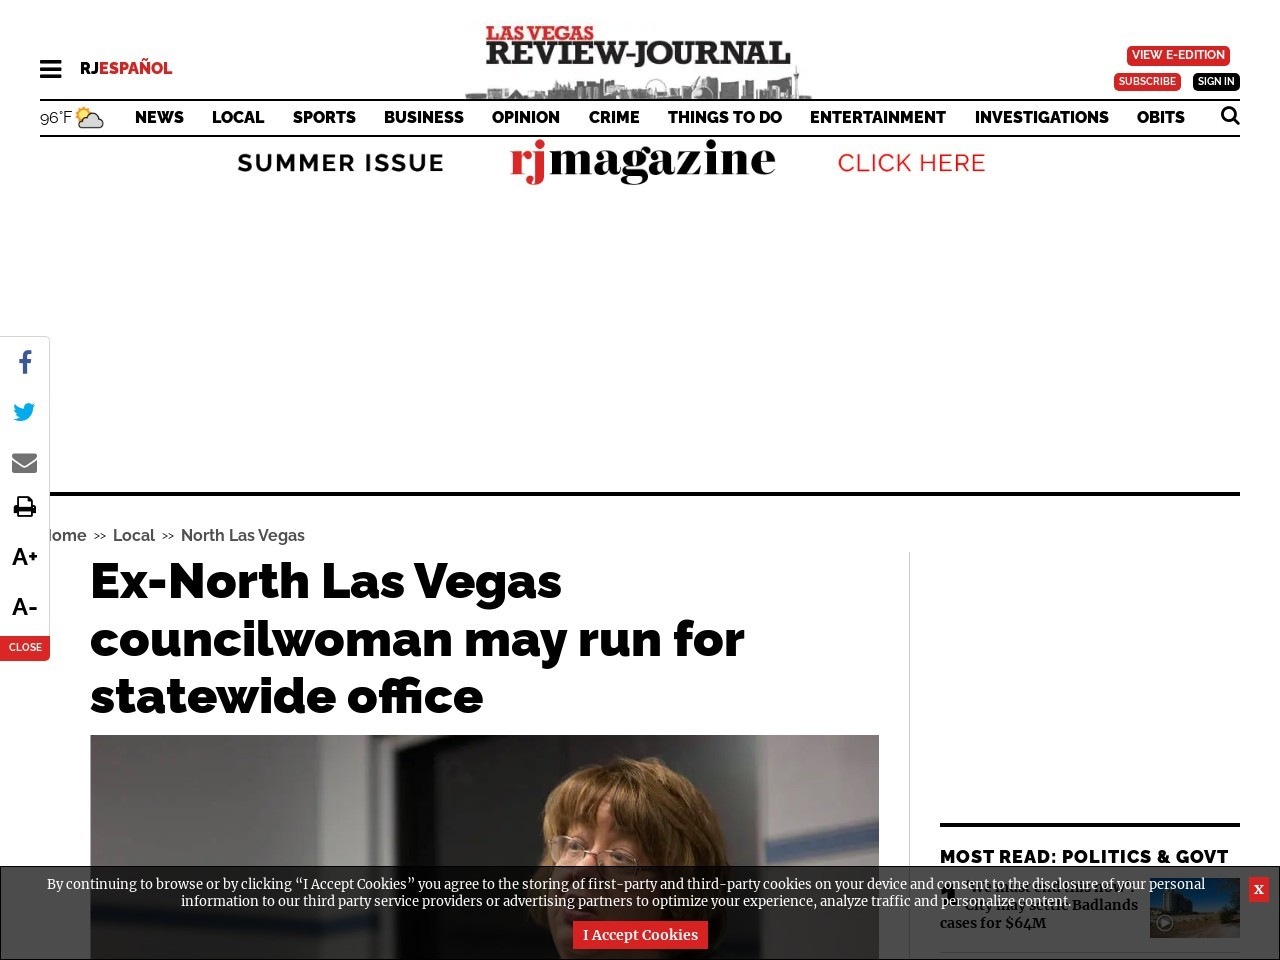 Ex-North Las Vegas councilwoman may run for statewide office